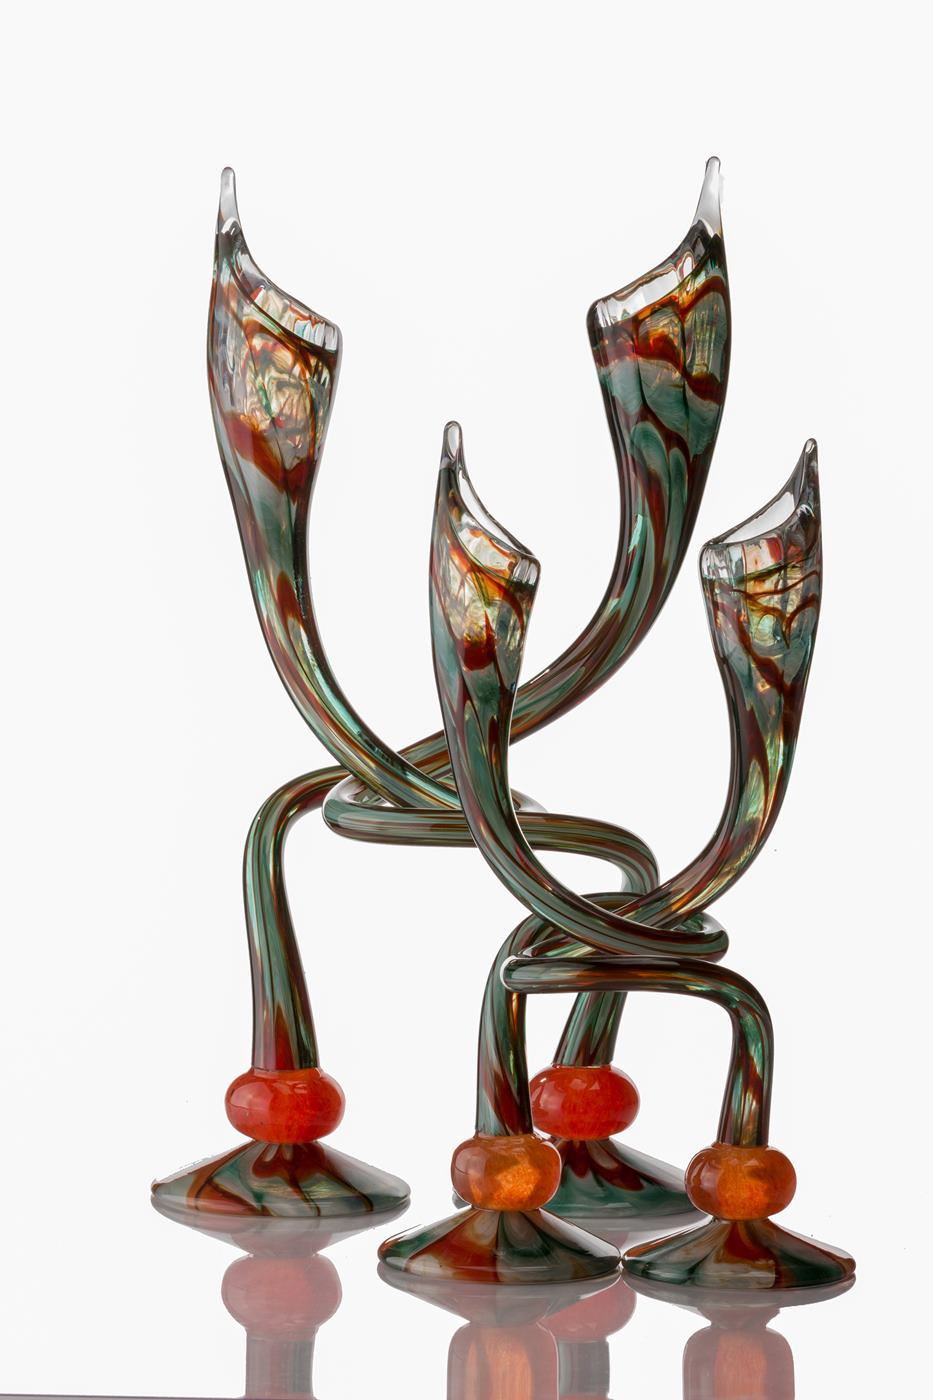 Christmas Candlesticks - Hudson Glass